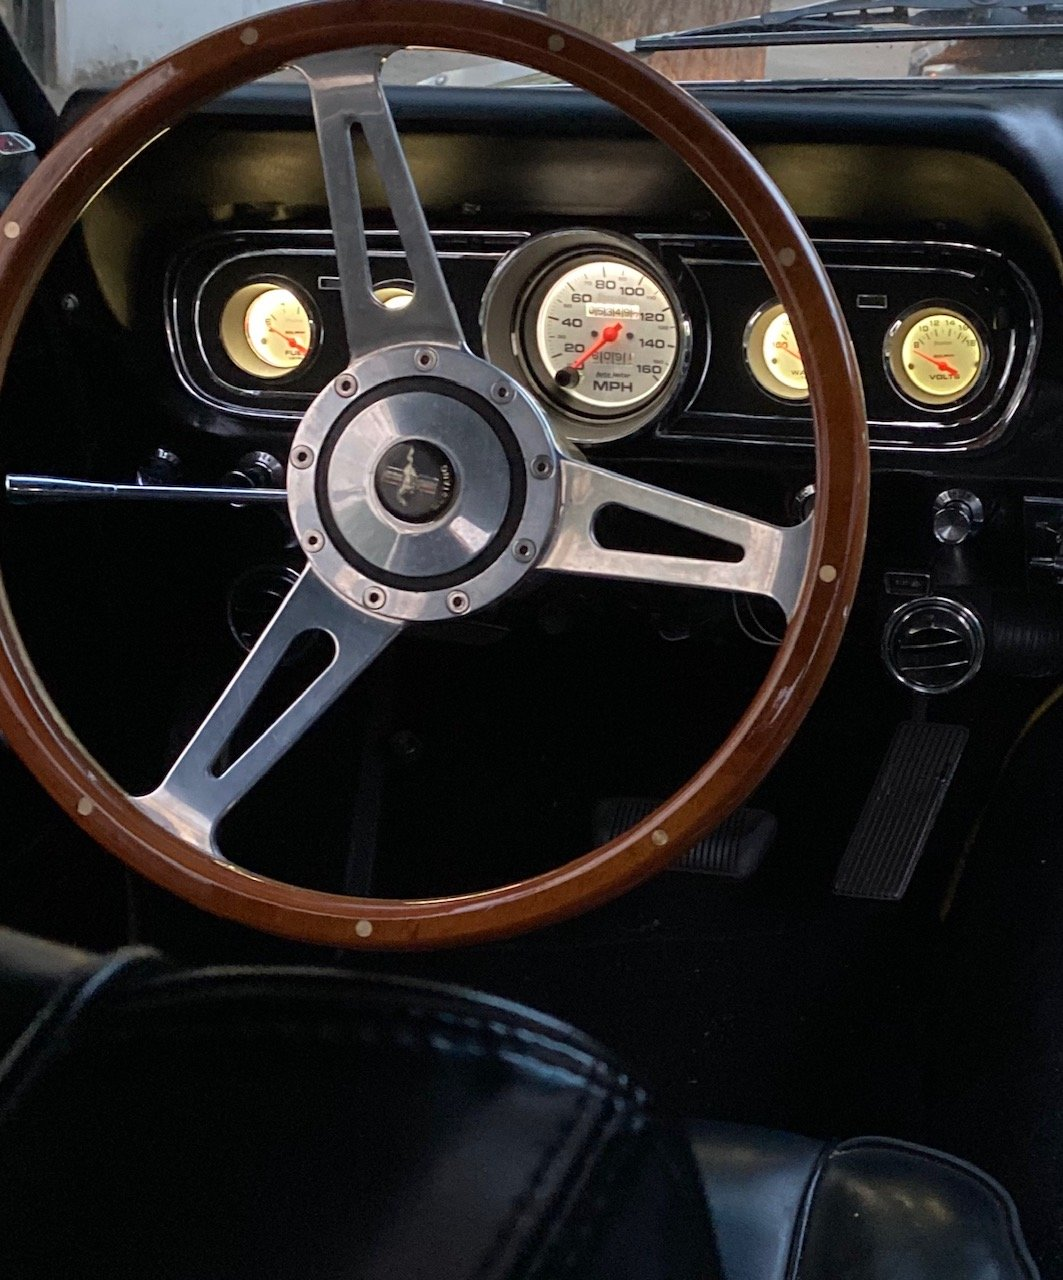 1966 Ford Mustang 302 GT Coupe - 300 BHP For Sale (picture 4 of 6)